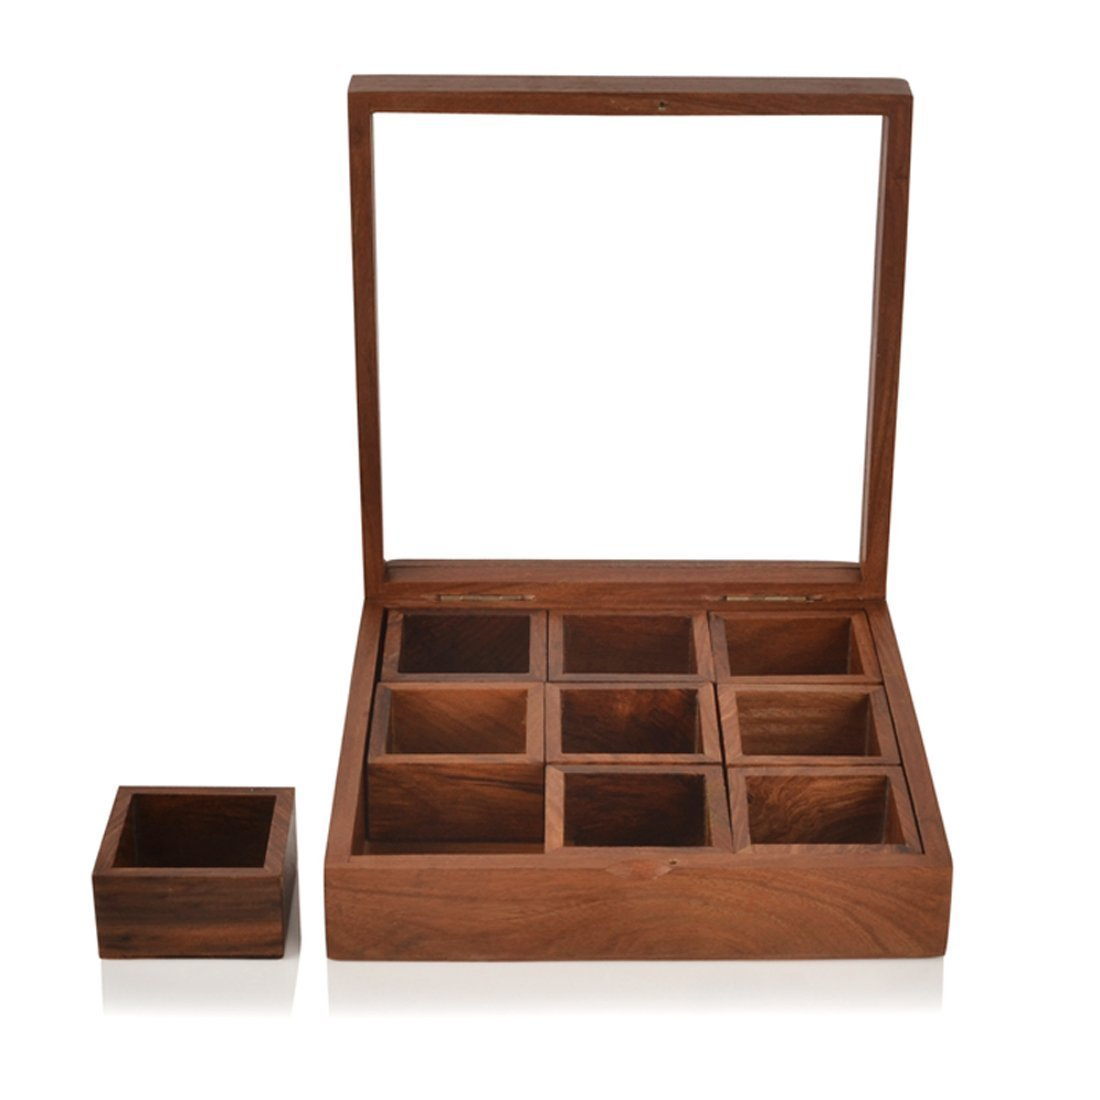 Wooden Spice Container Box